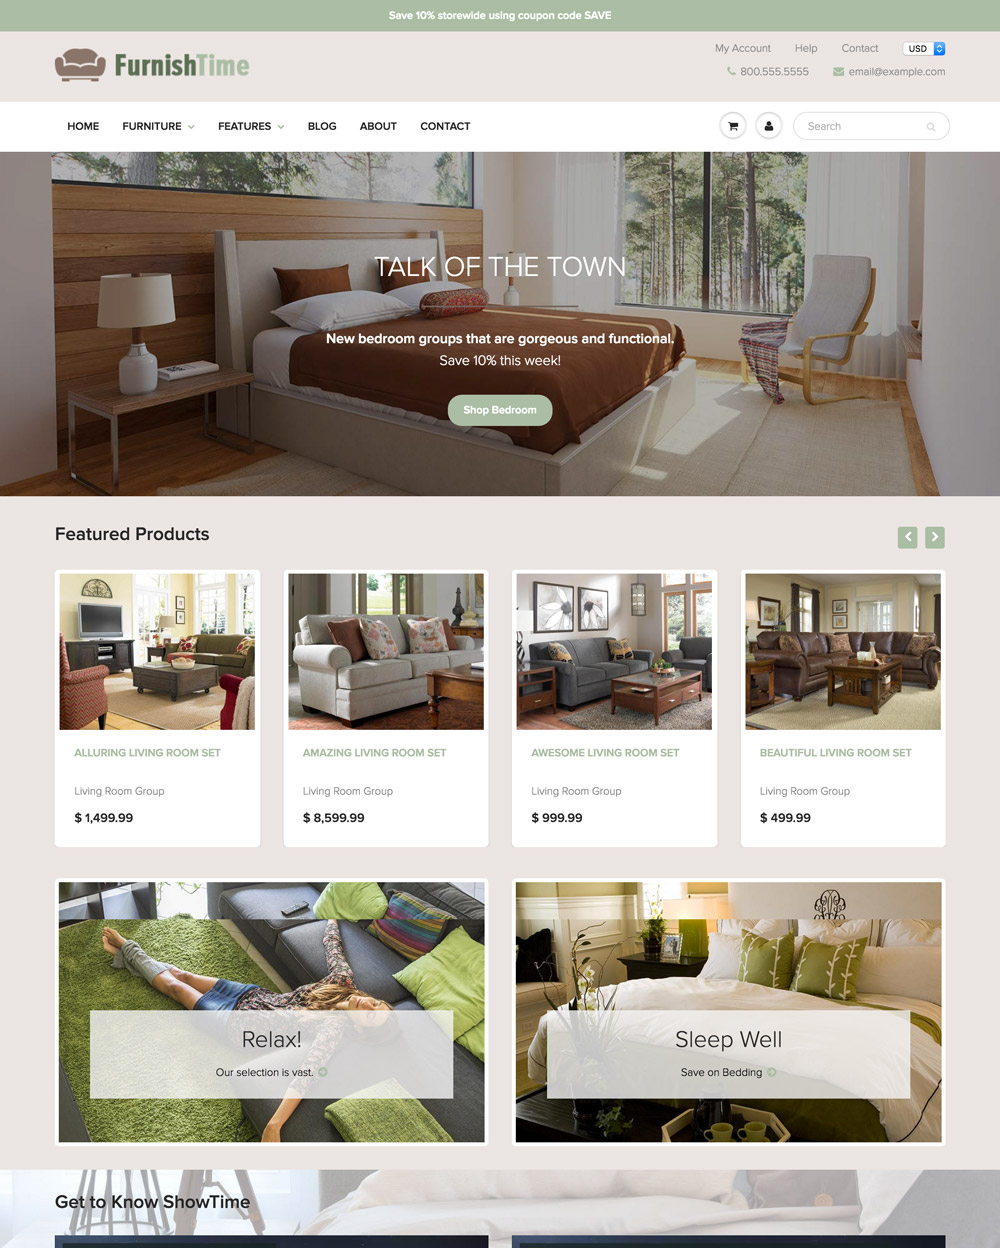 Interior Design Furniture Websites With Pics And Prices ~ Cooktime theme showtime ecommerce website template